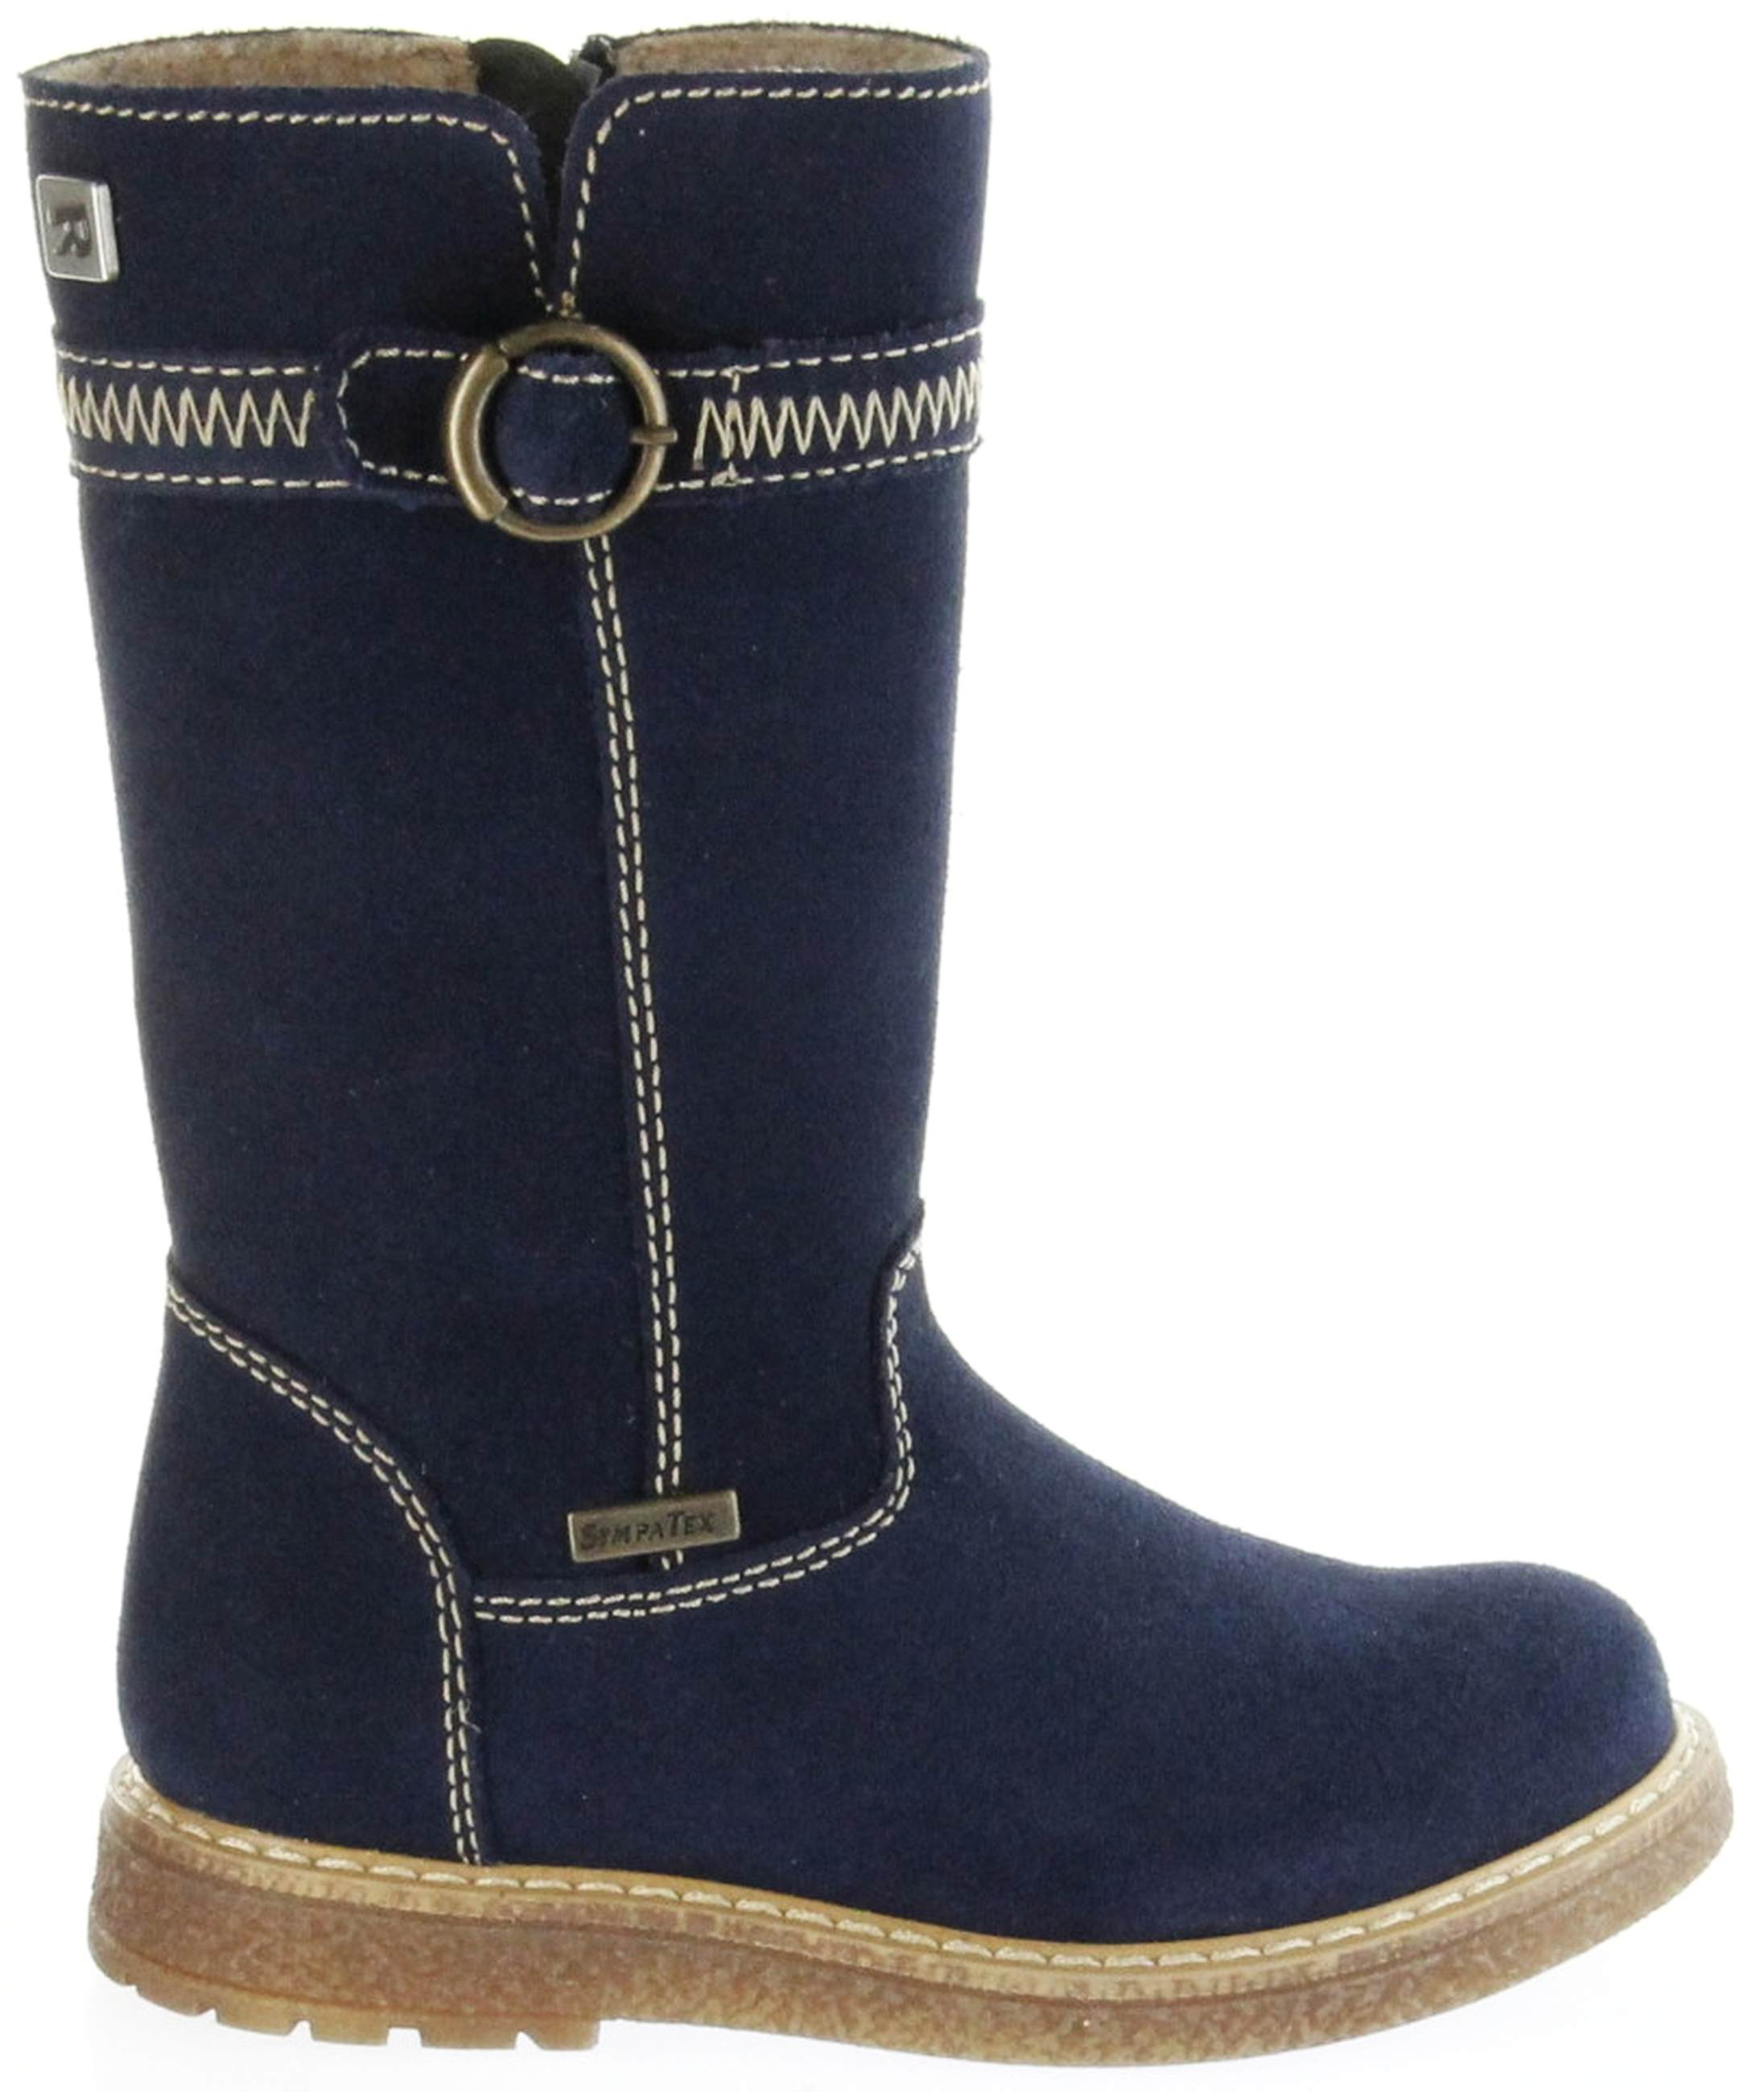 buy online 6ab42 4718a Richter Kinder Winter Stiefel blau Velourleder SympaTex Warm Mädchen  4752-241-7200 atlantic